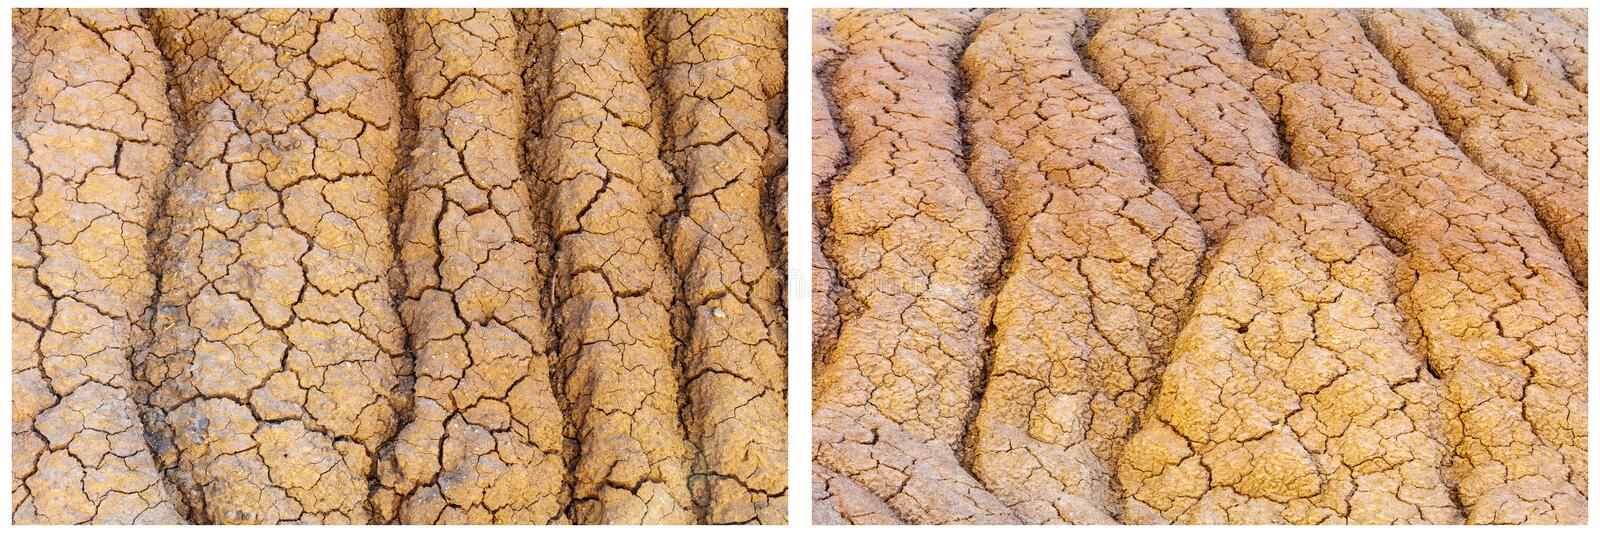 Dirt soil cracked eroded ruts pattern collage. The clay desert hot dry arid soil dirt backgrounds has texture and patterns of eroded ruts and grooves caused by stock photos